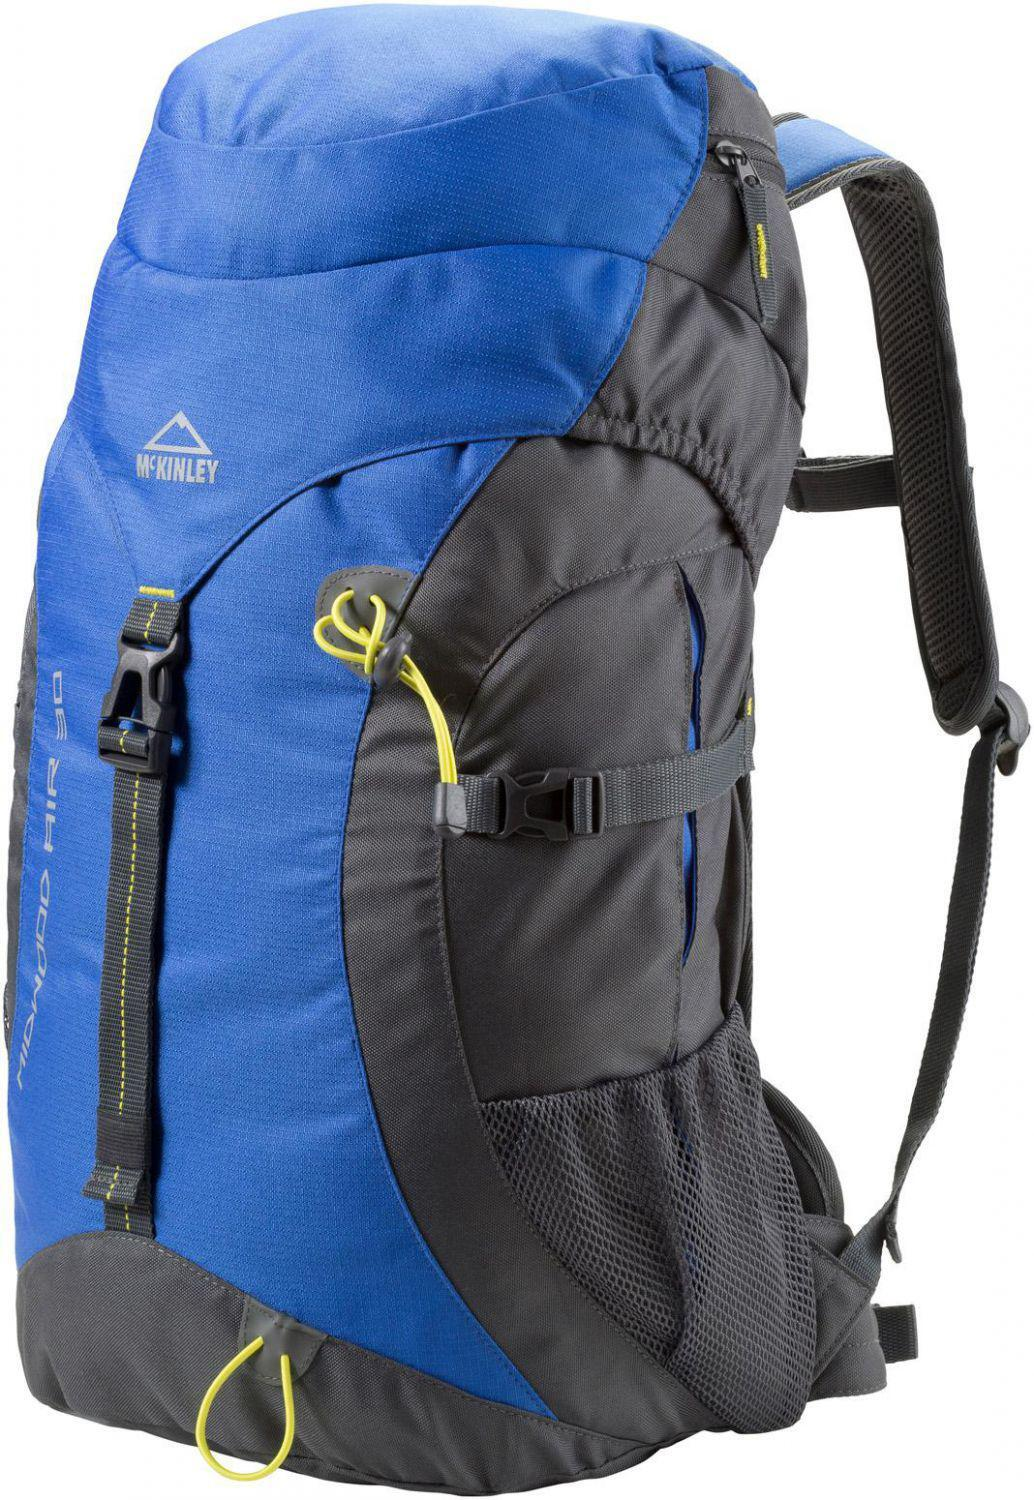 mckinley-midwood-air-30-wanderrucksack-farbe-901-blau-anthrazit-lime-